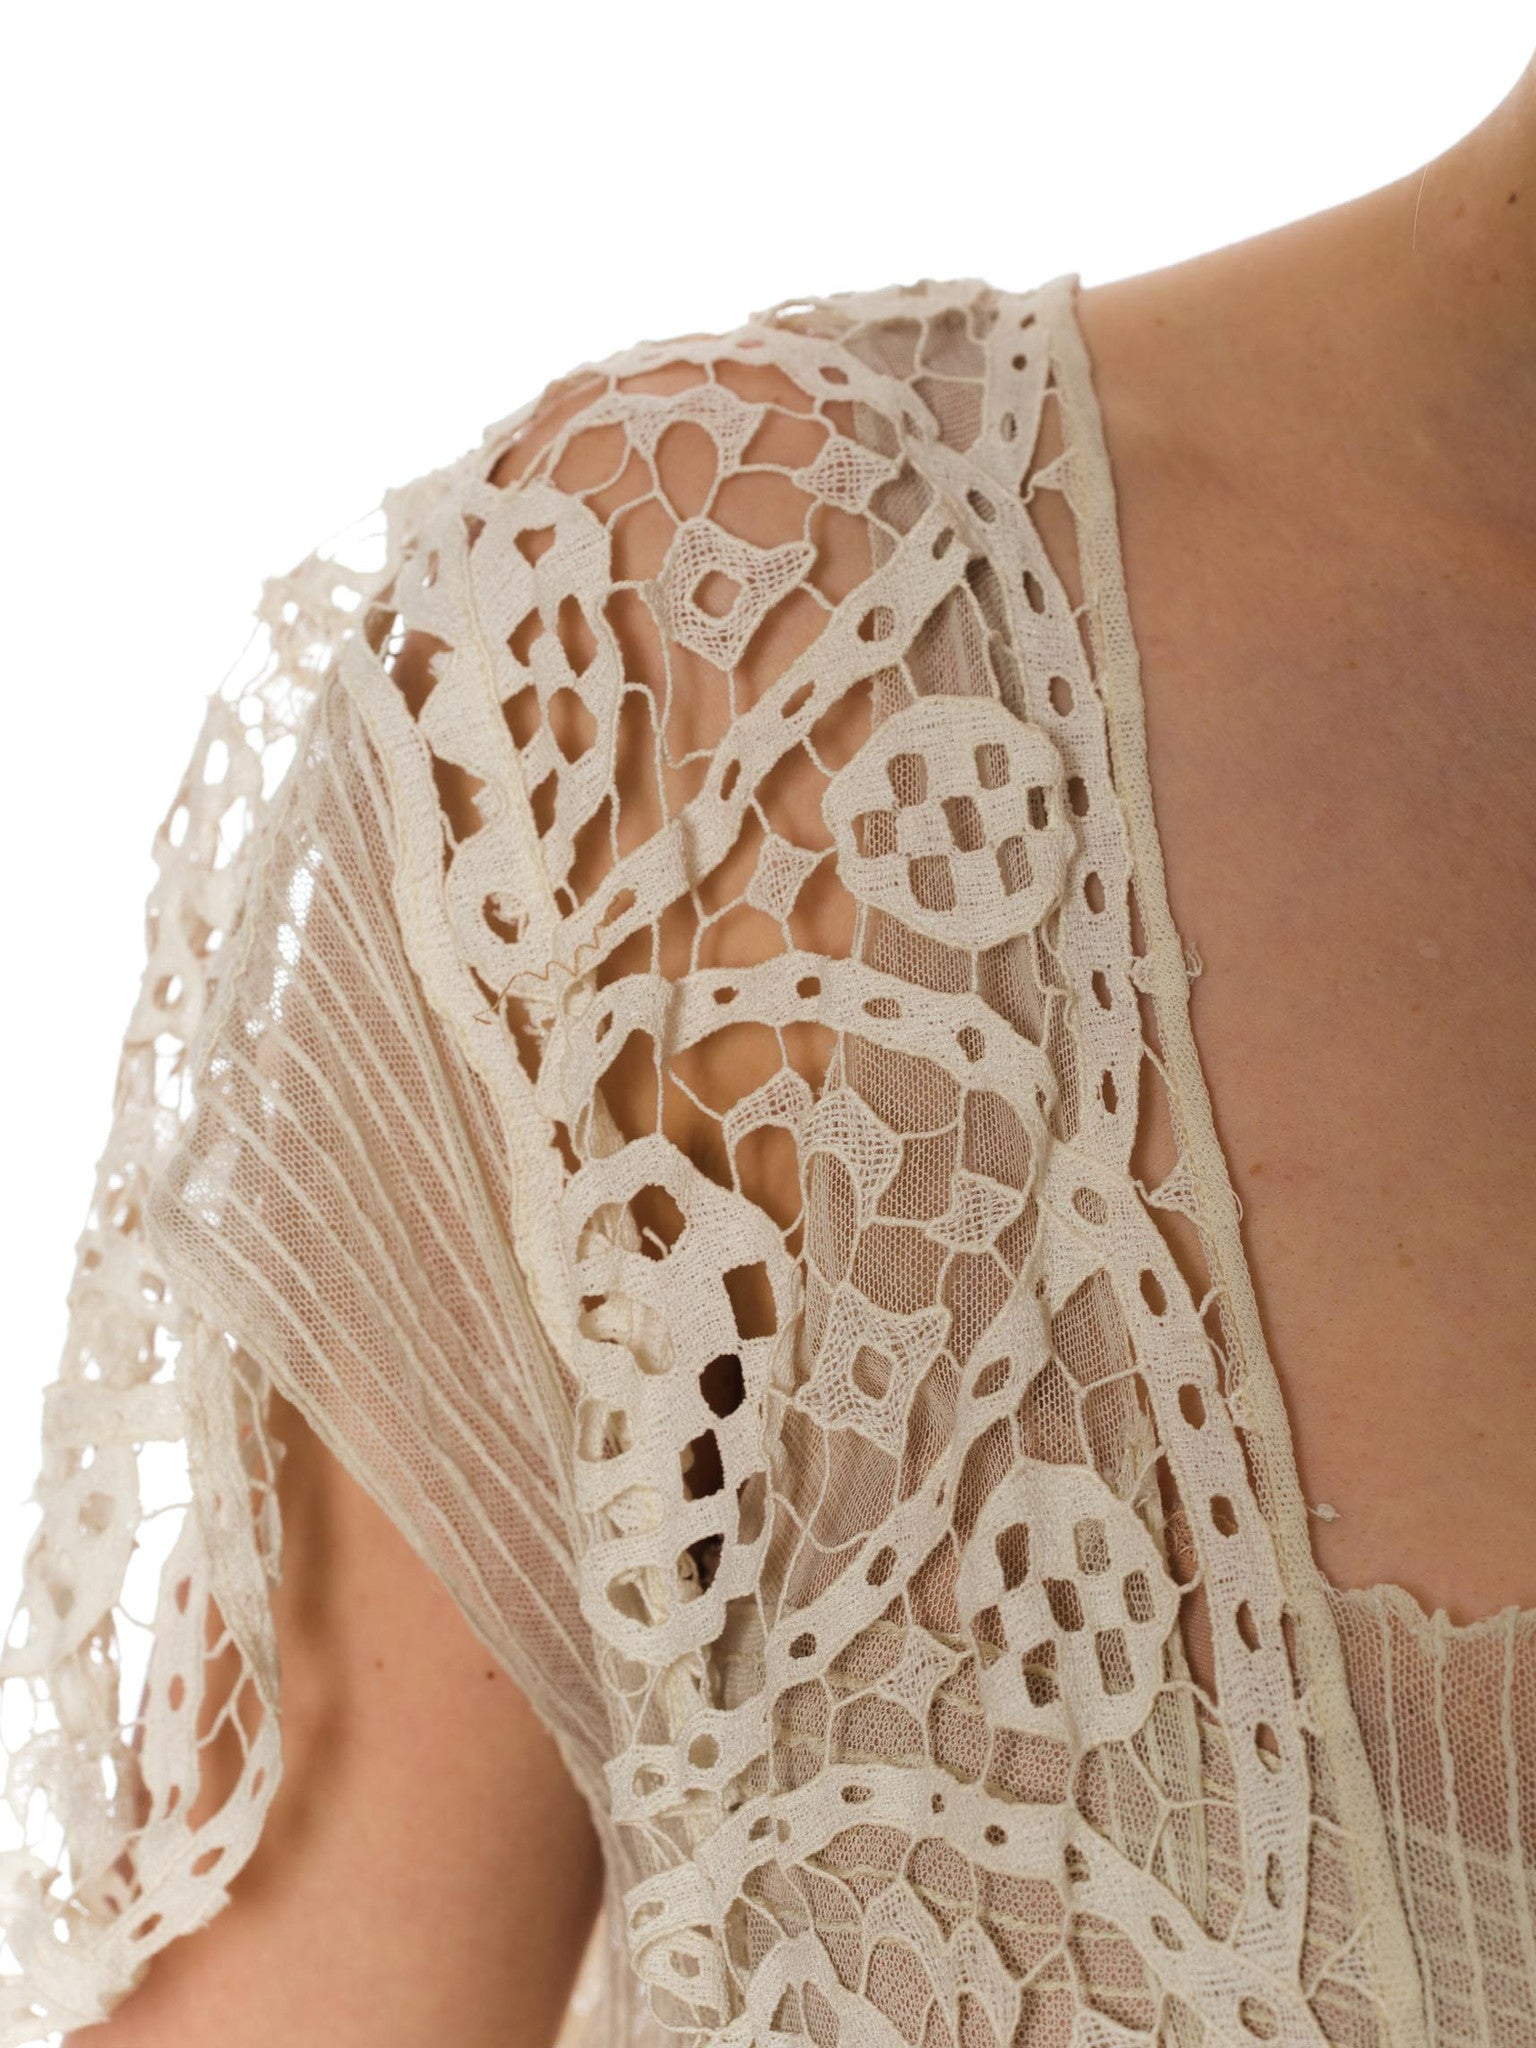 1920S Cream Cotton Net & Modernist Geometric Lace Dress